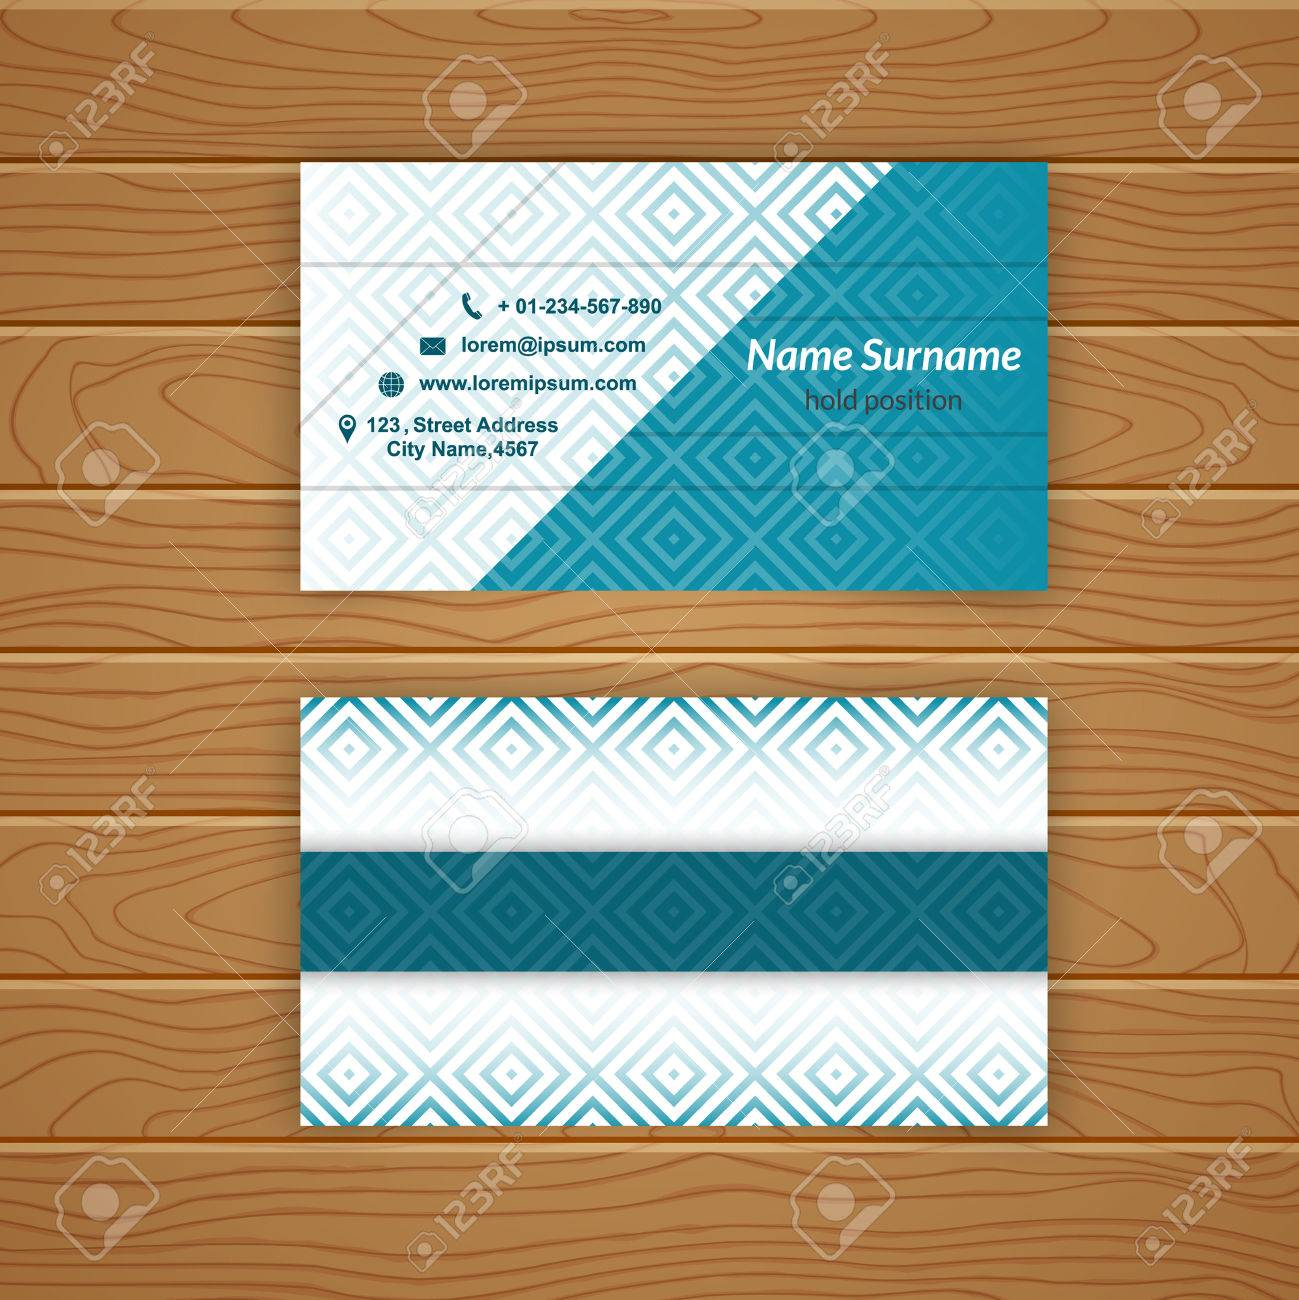 Business card blank template with textured background from rhombus business card blank template with textured background from rhombus tiles minimal elegant vector design stock flashek Gallery